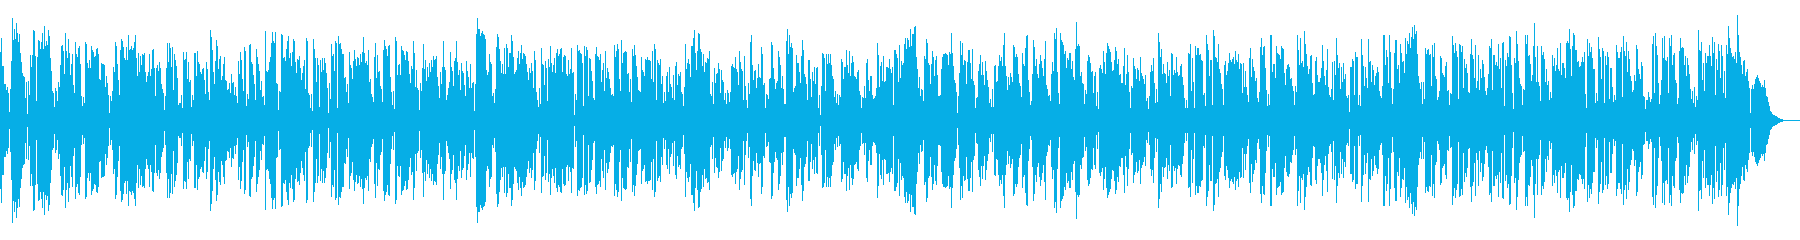 Retro jazz that seems to be playing at Disney's reproduced waveform